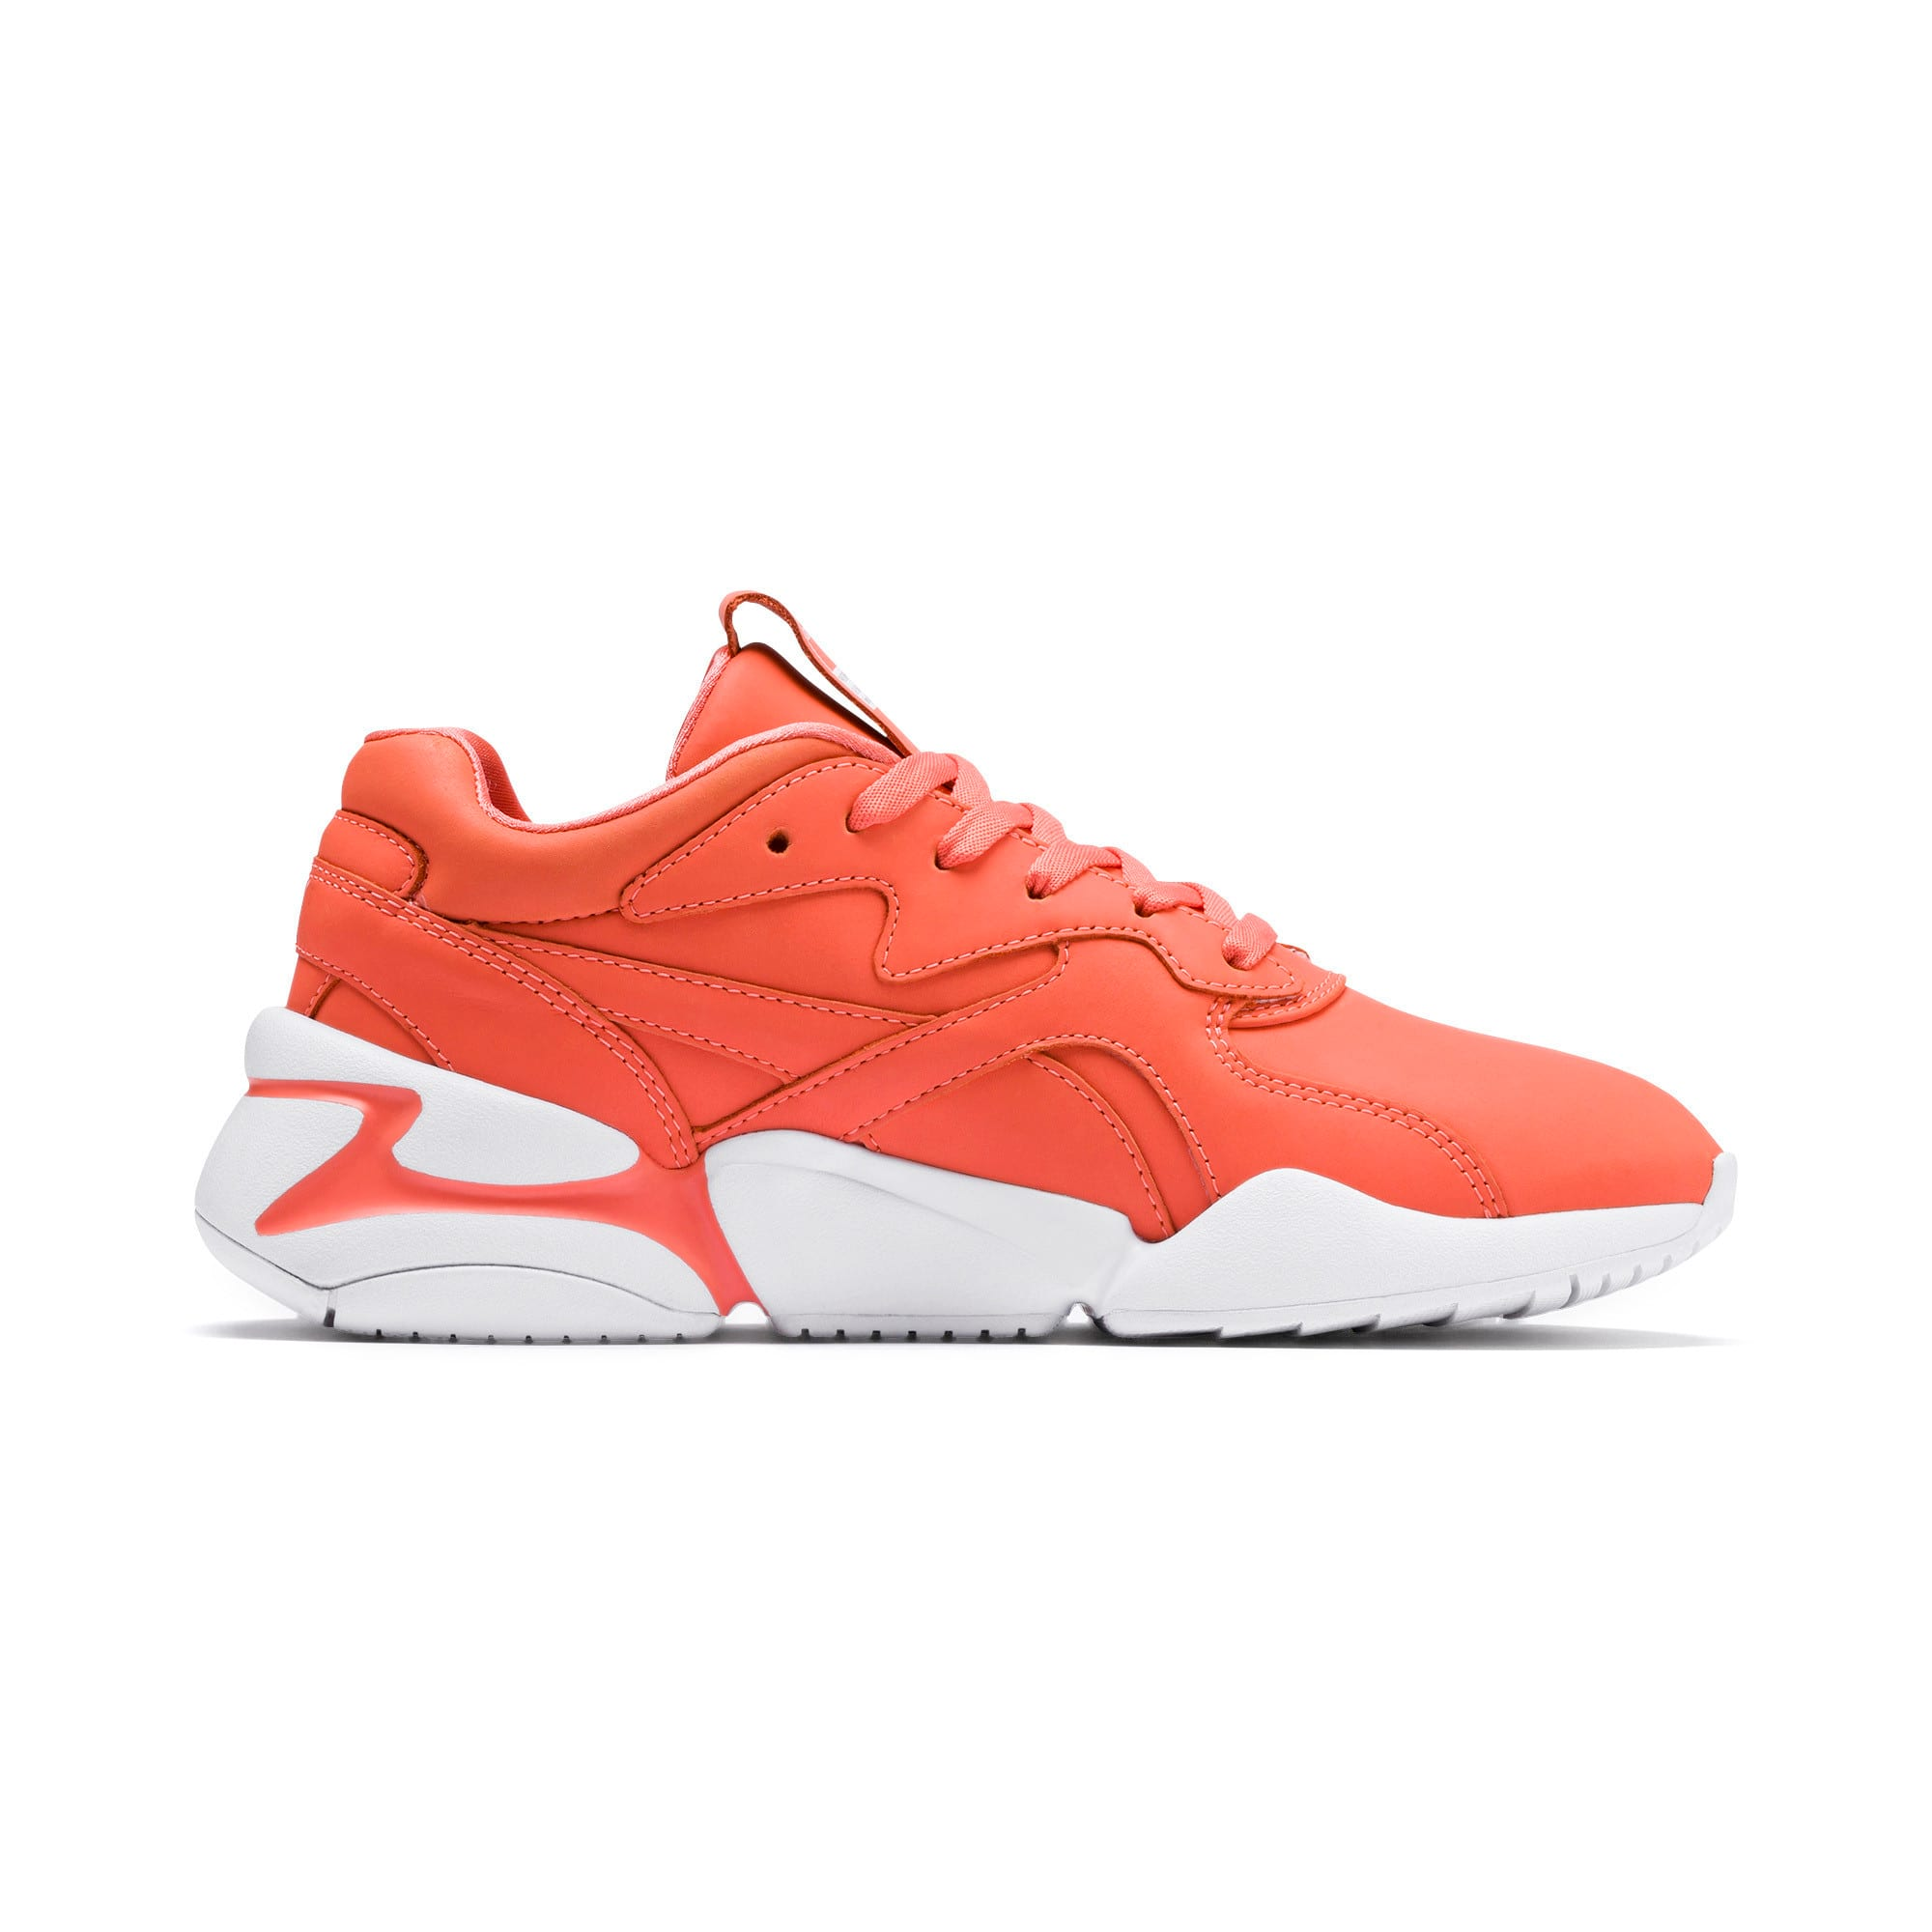 Thumbnail 5 of PUMA x PANTONE Nova Women's Trainers, Living Coral-Puma White, medium